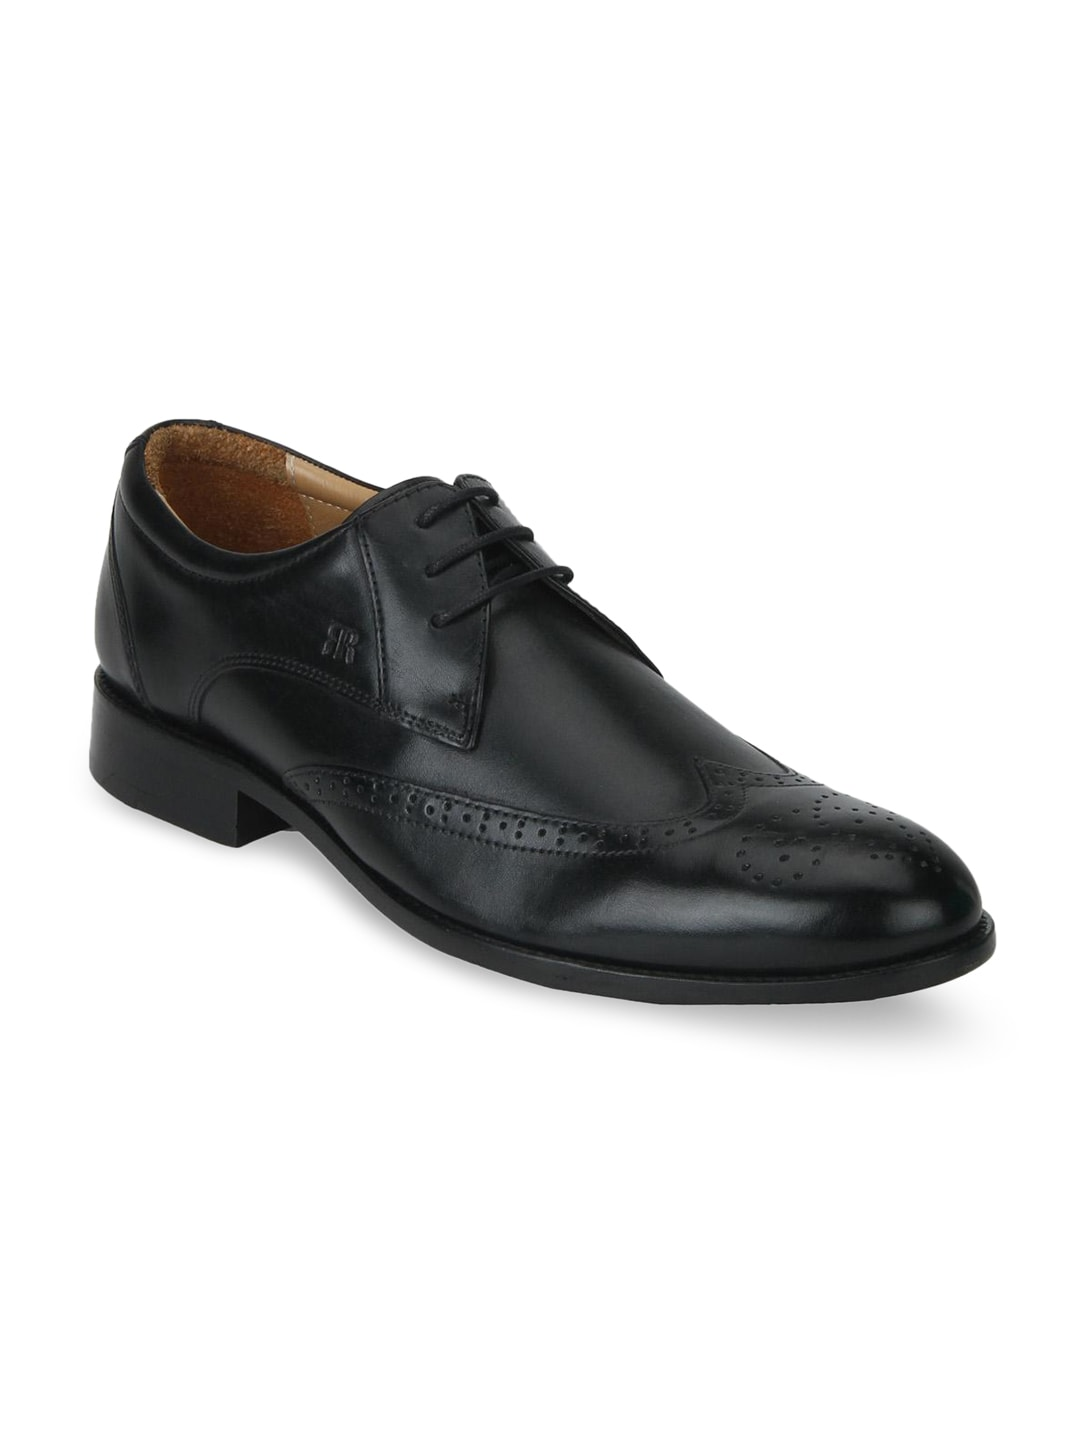 Raymond Men Black Round-Toed Leather Brogues image